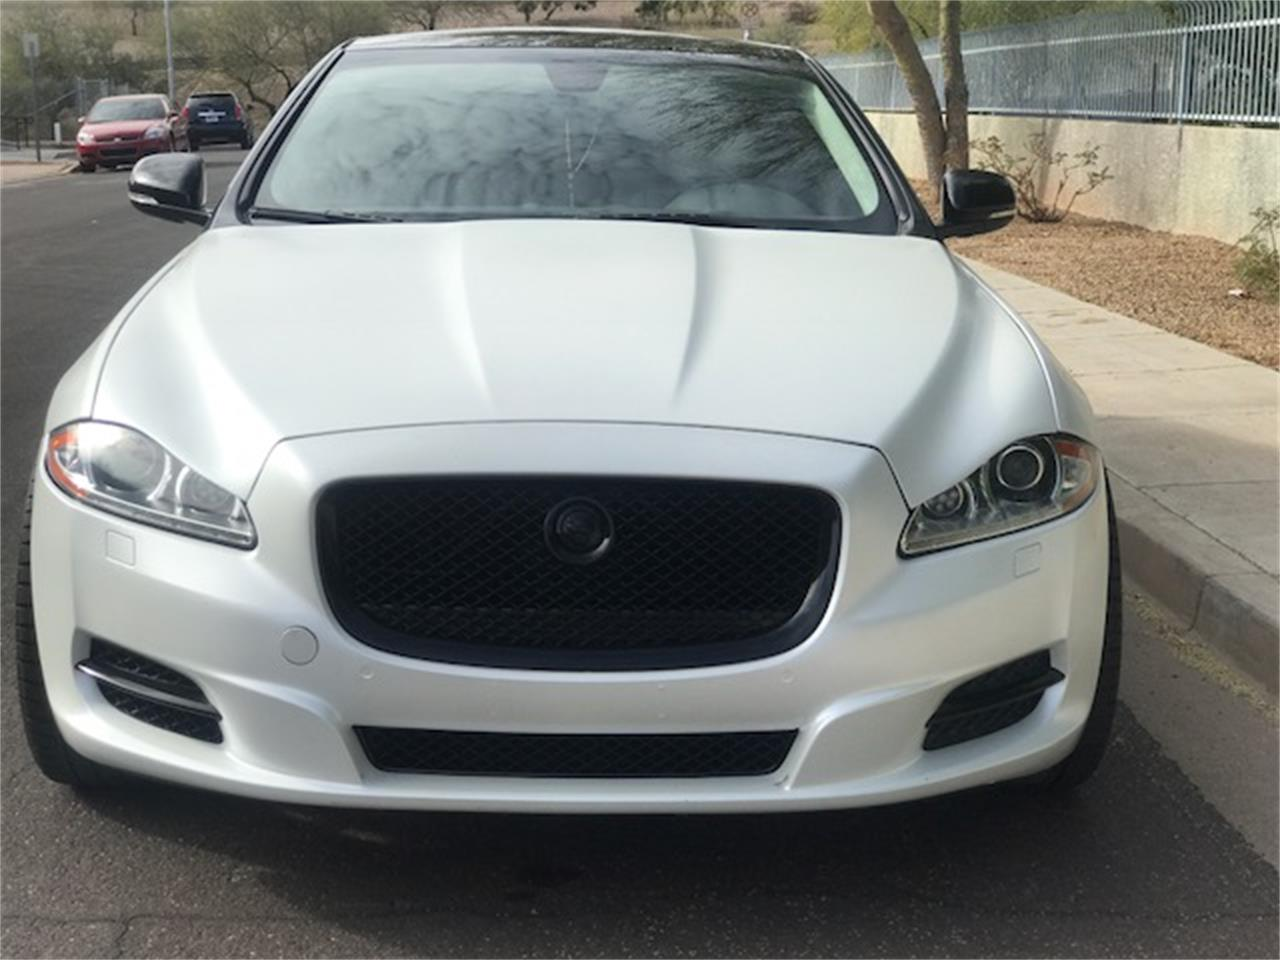 Large Picture of 2011 XJL Supercharged located in Scottsdale Arizona Auction Vehicle Offered by Russo and Steele - MOE8